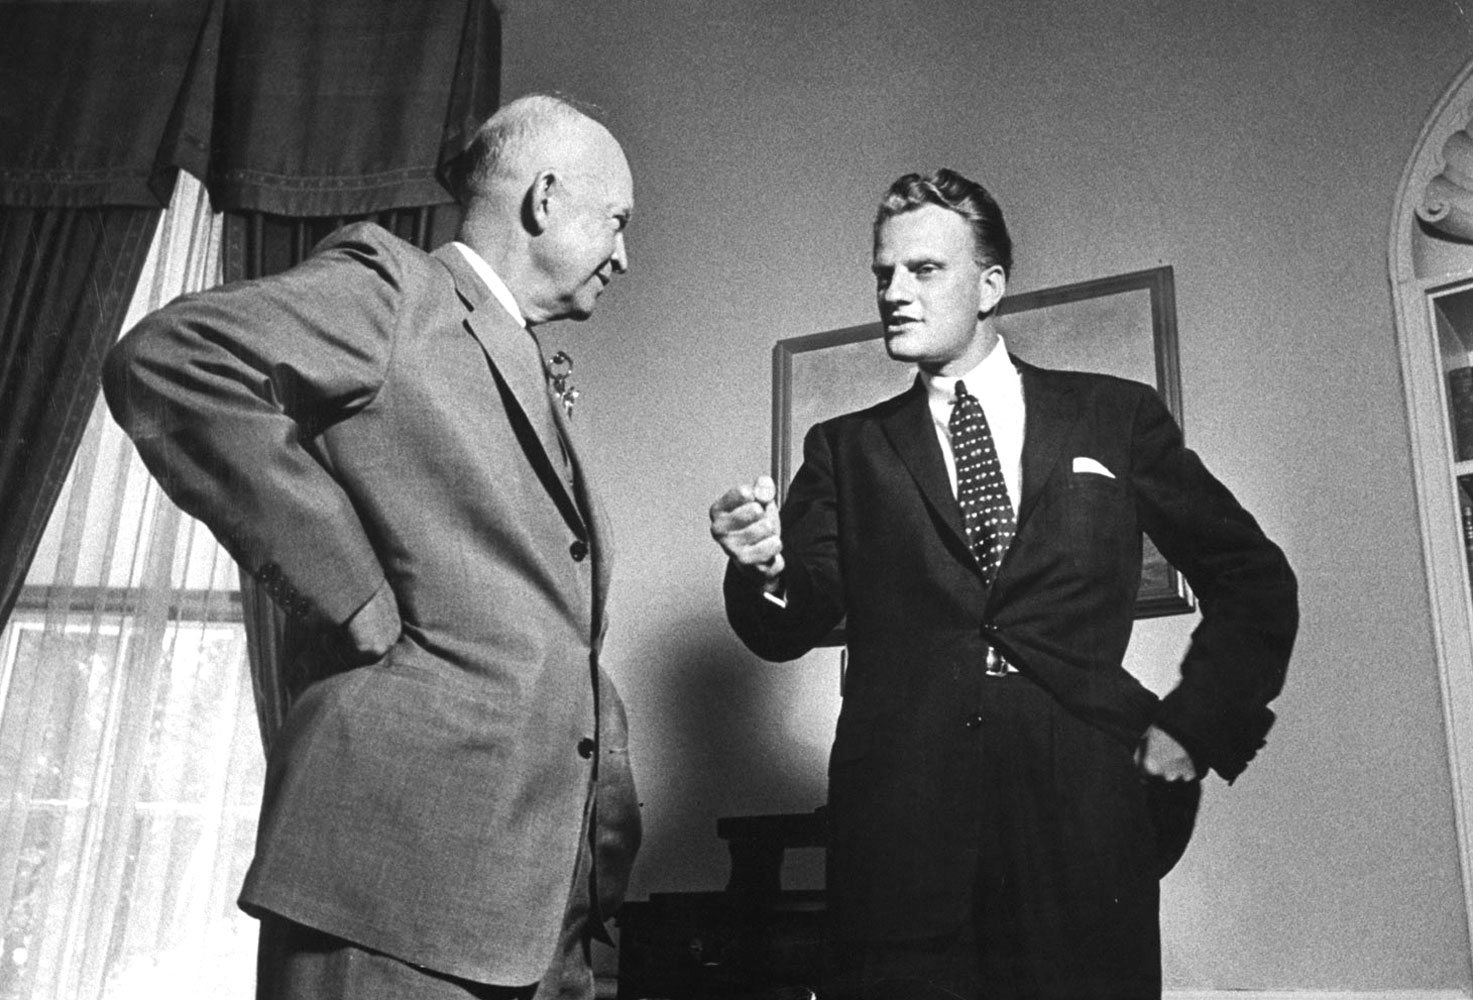 Ike                                                              Graham speaks with President Dwight Eisenhower at the White House, May 11, 1957.